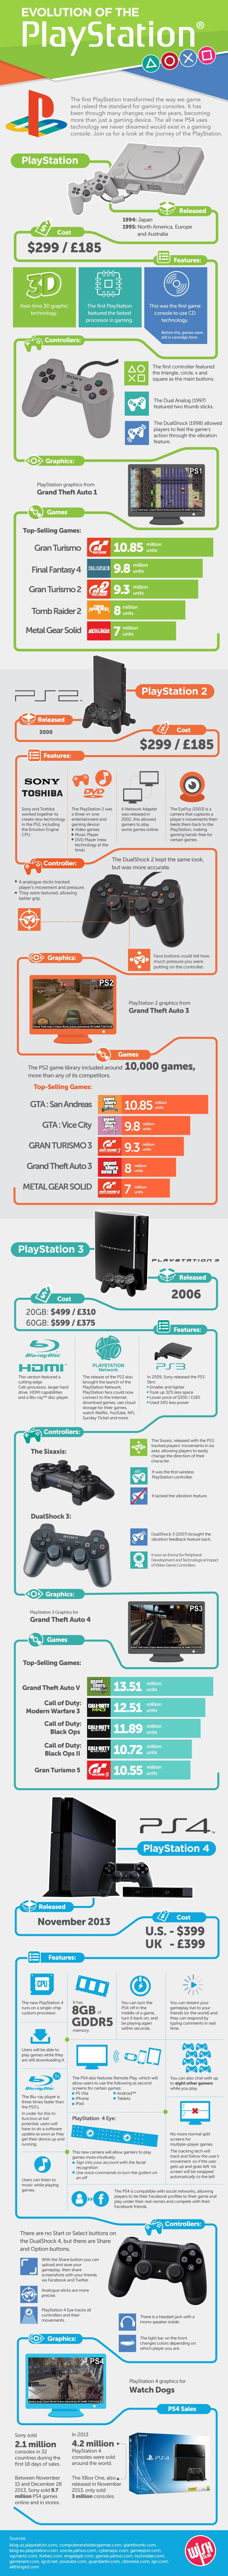 evolution-of-the-playstation_52f08c4585f63